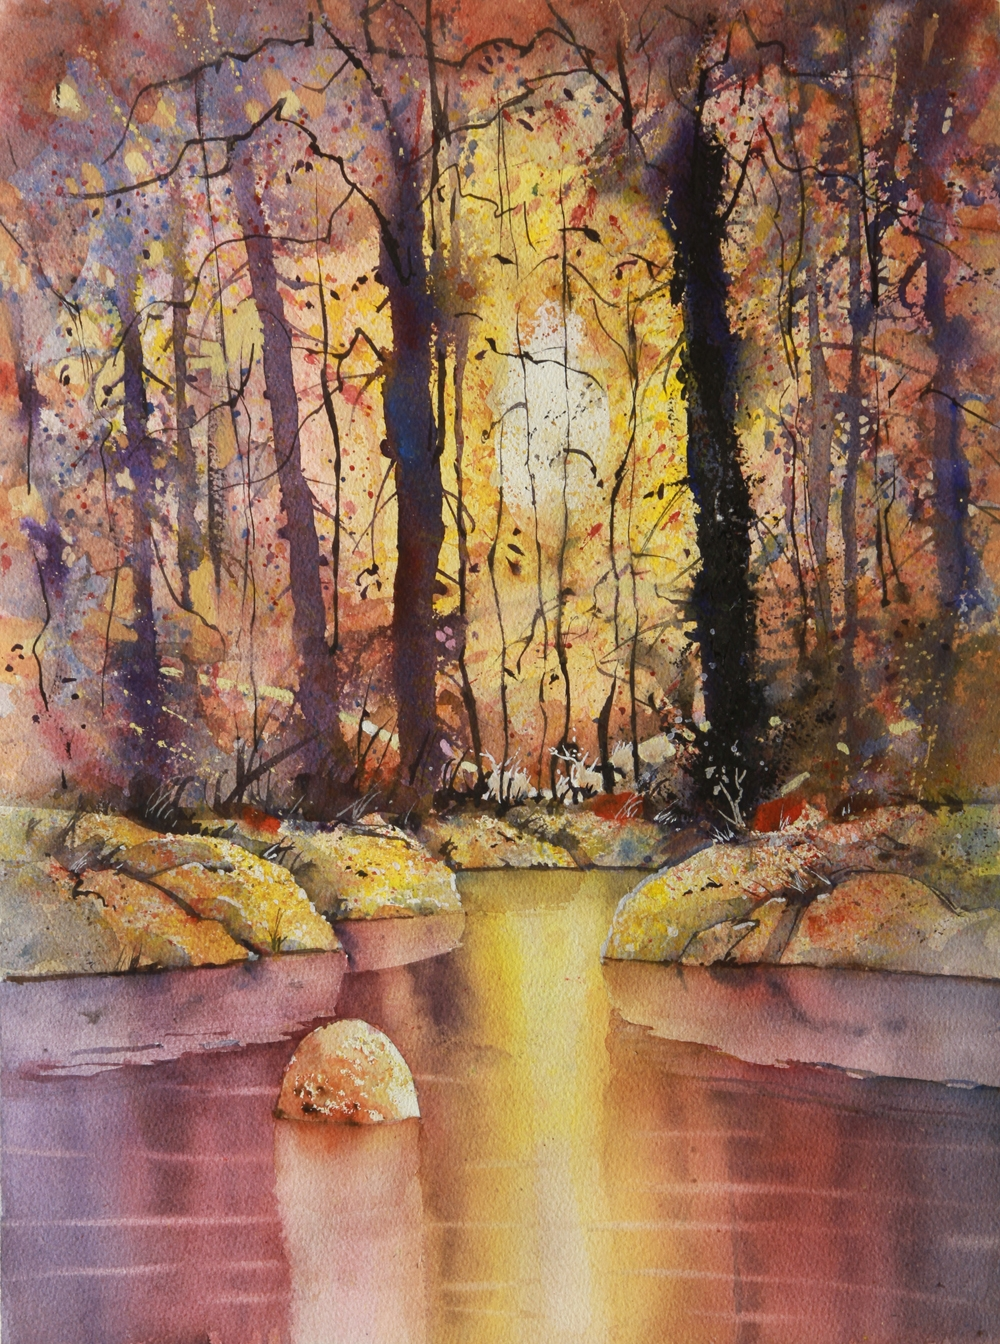 Rex Beanland, Cameron Pond 2, watercolour 20 x 15